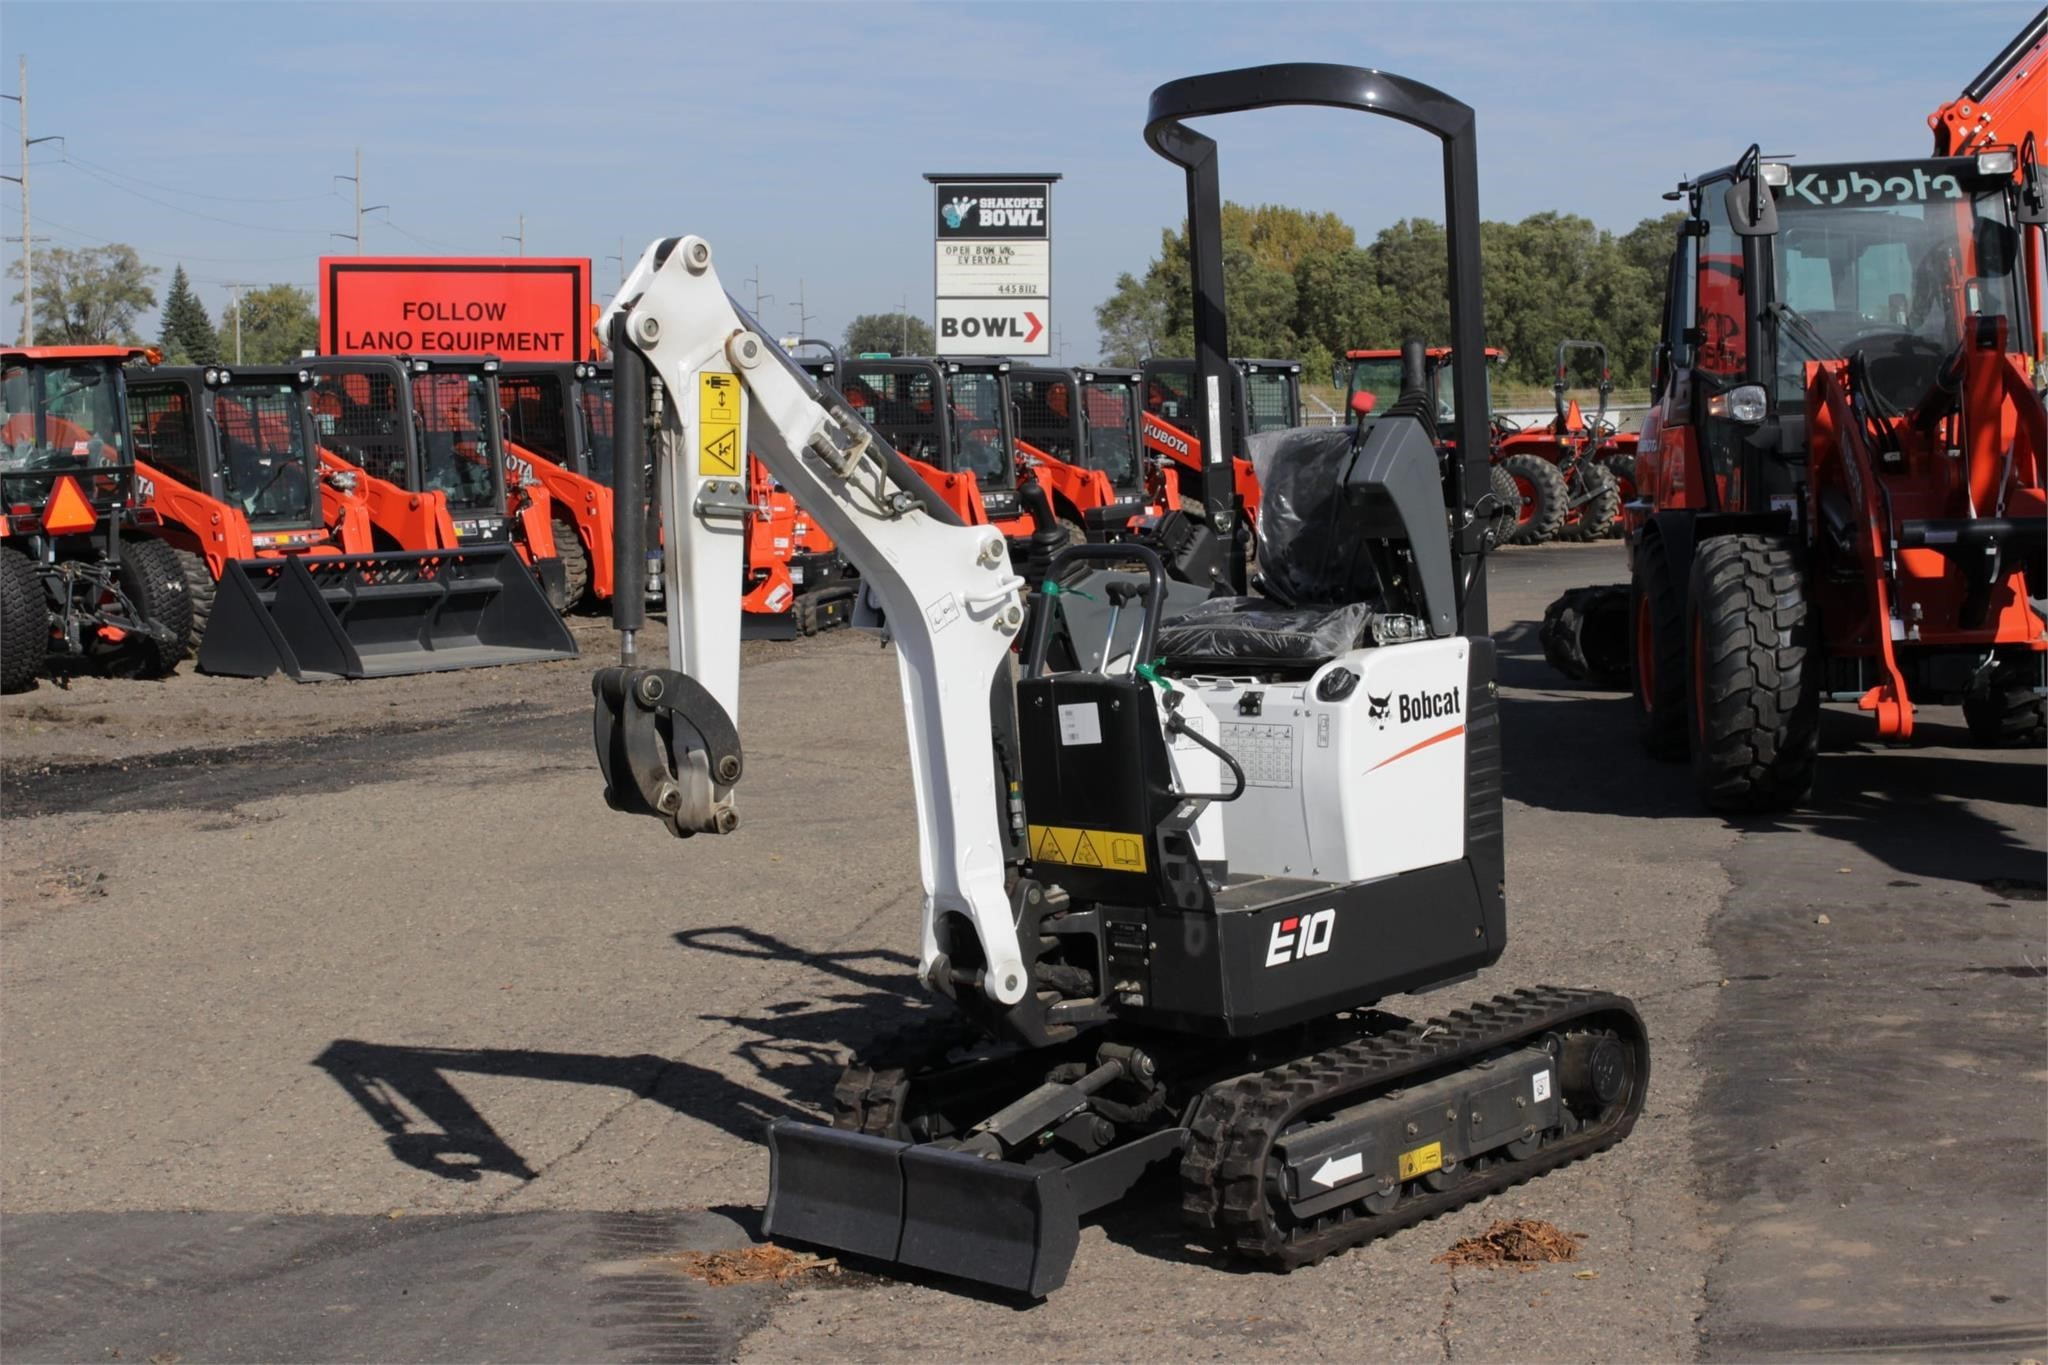 2020 Bobcat E10 Excavators and Mini Excavator